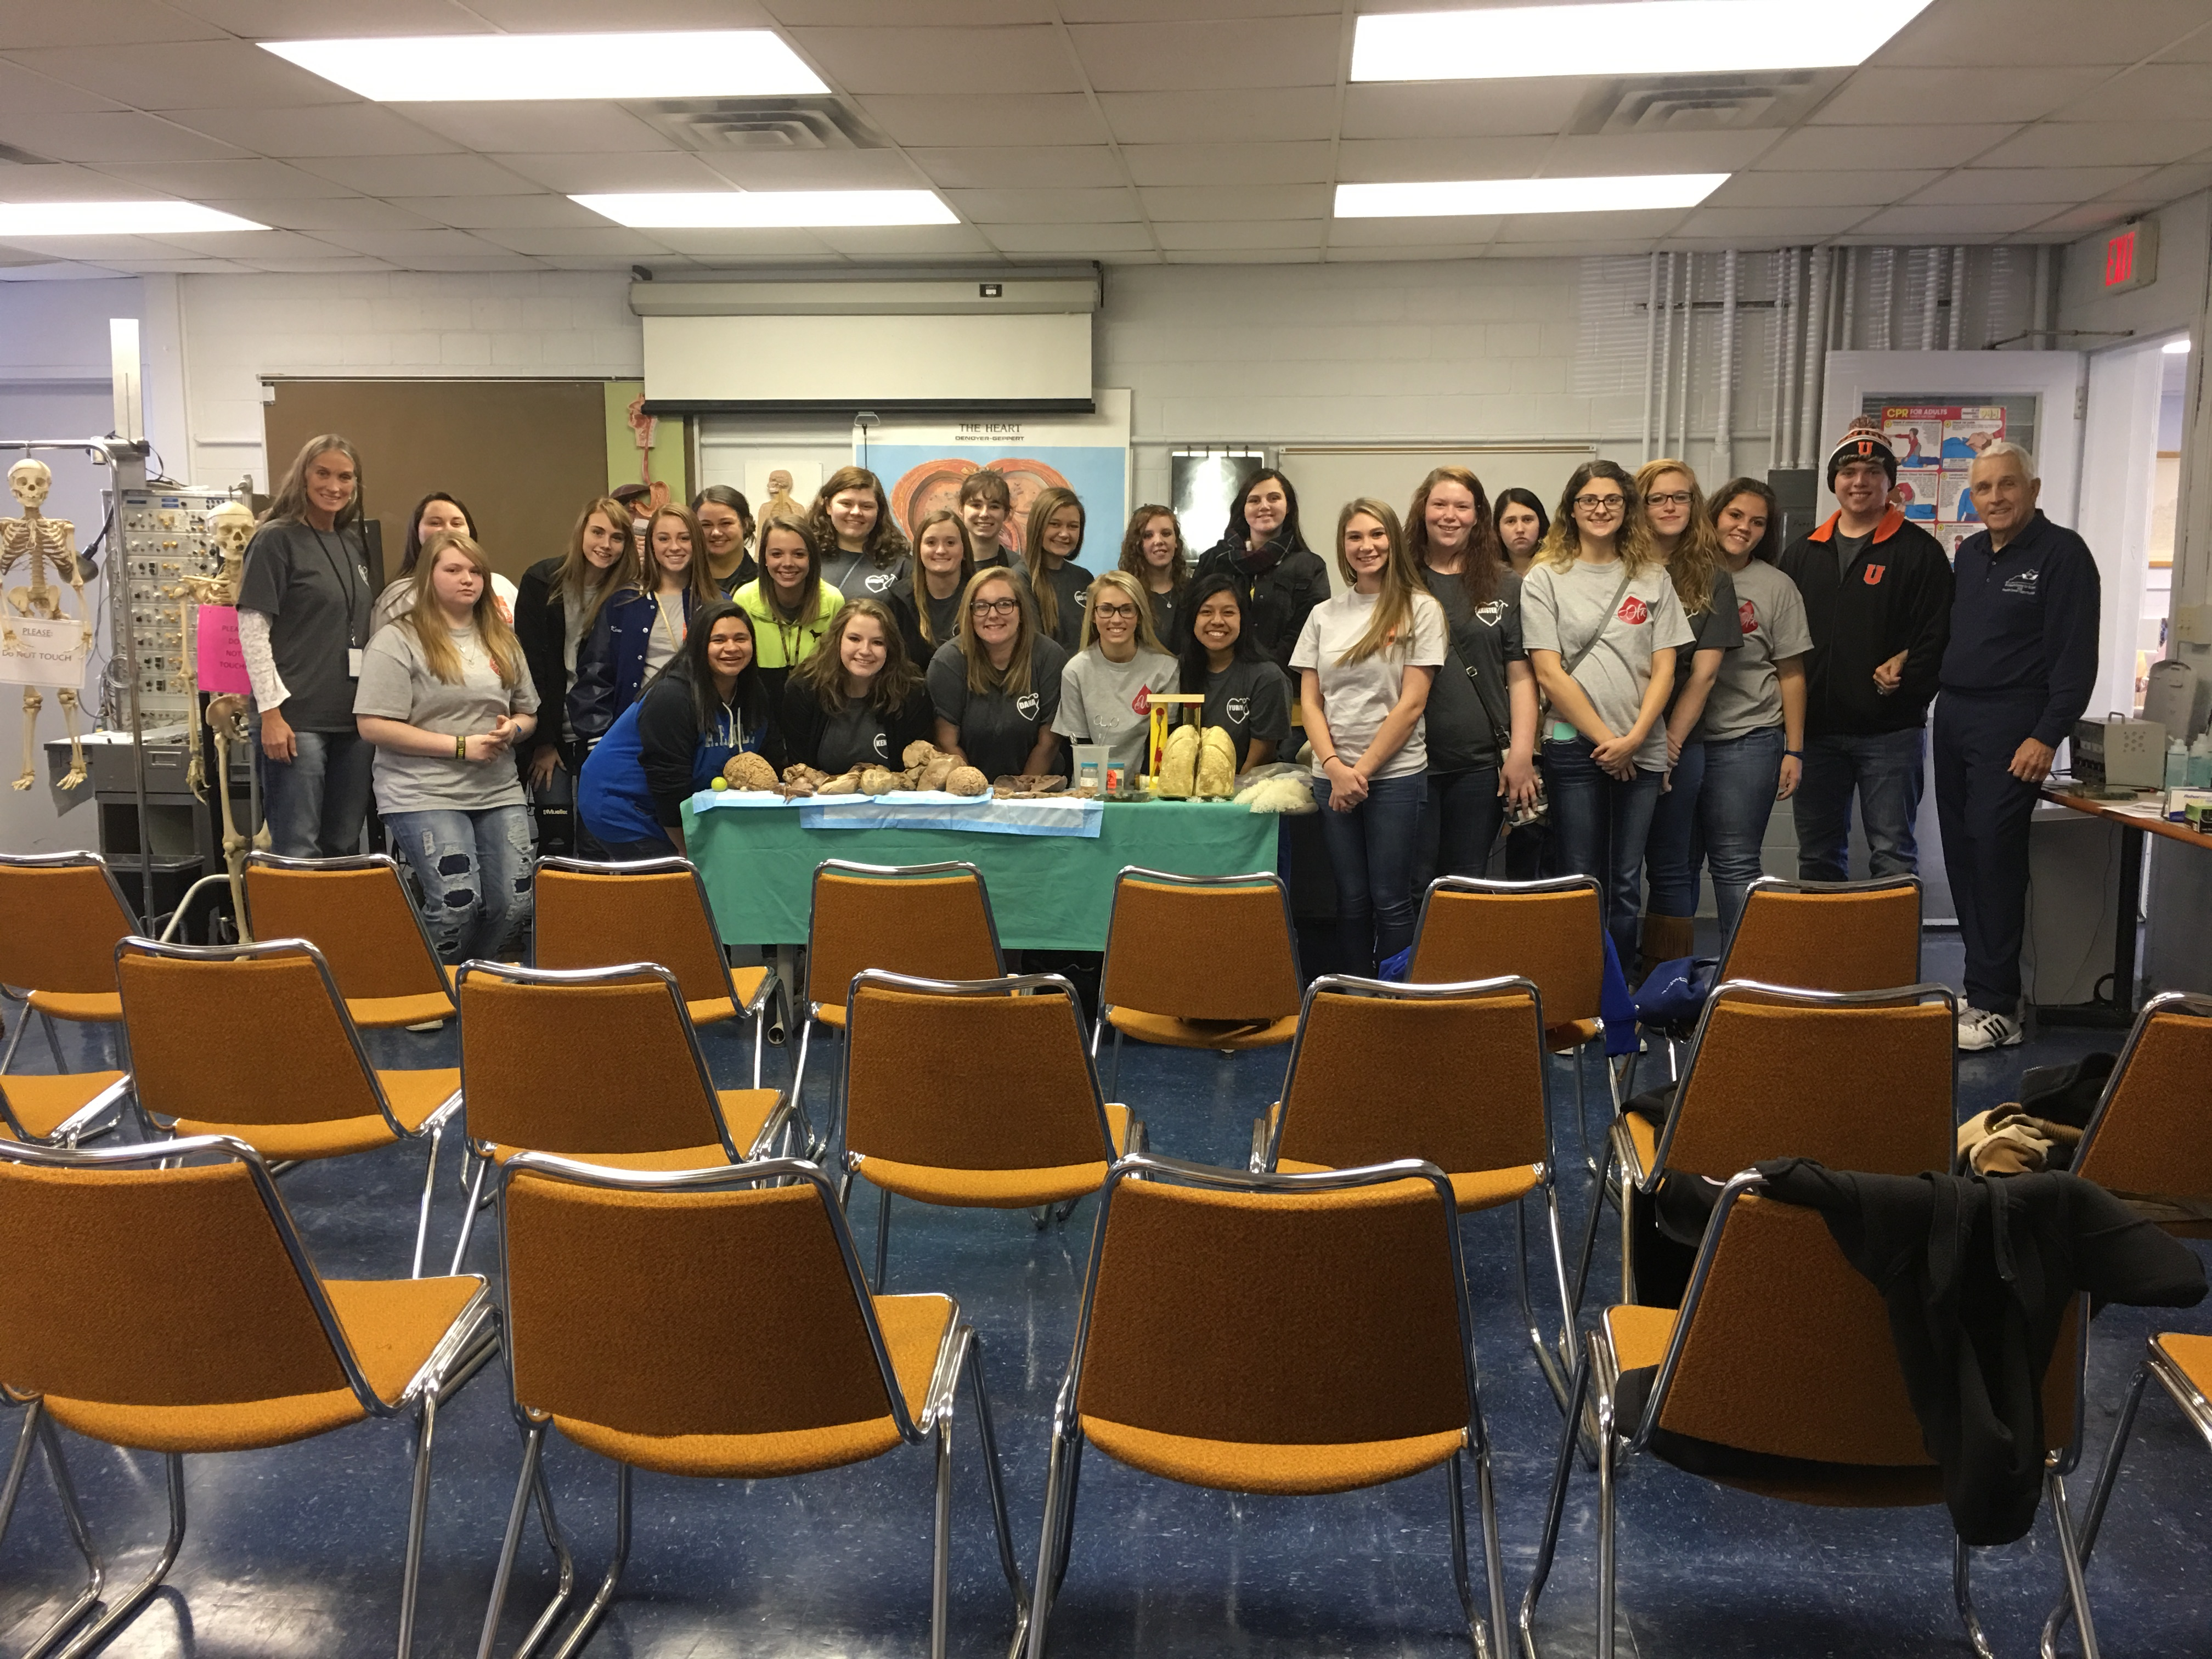 On Thursday, November 9th, Clinton County Area Technology Center's Health Science students visited the University of Kentucky's Cadaver Lab.